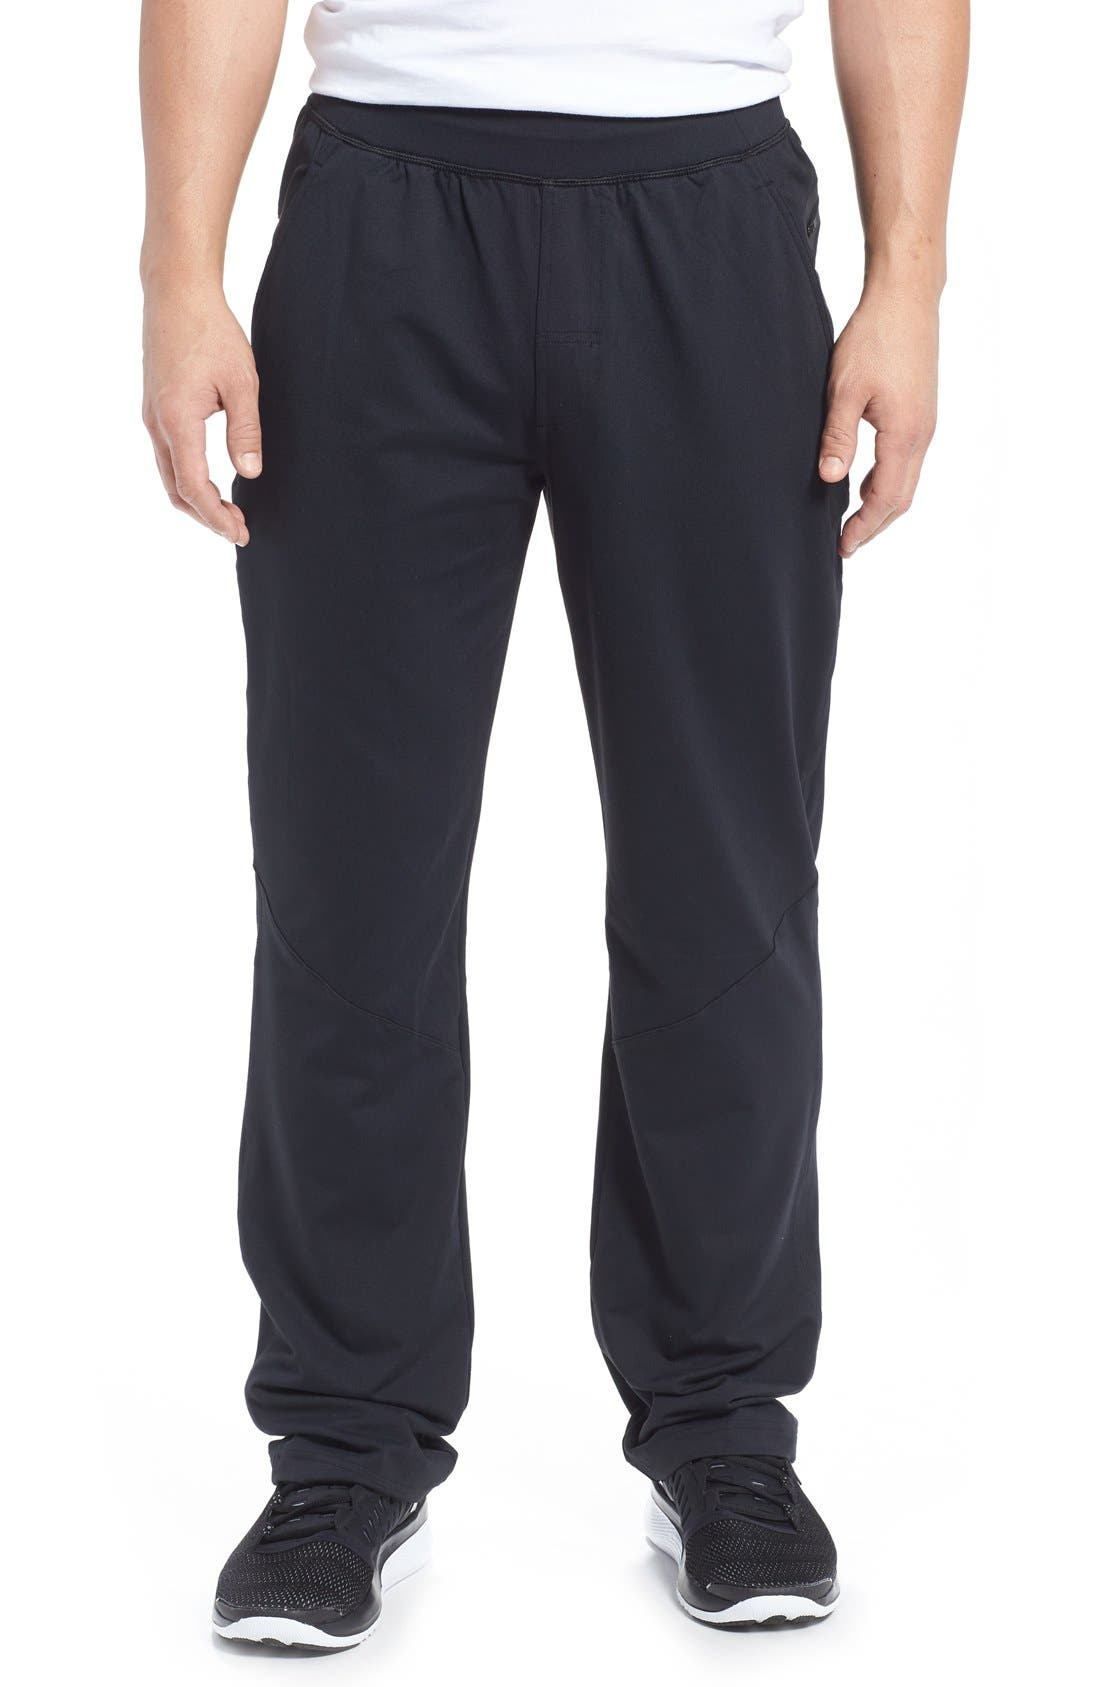 Alternate Image 1 Selected - Under Armour Regular Fit Knit Training Pants